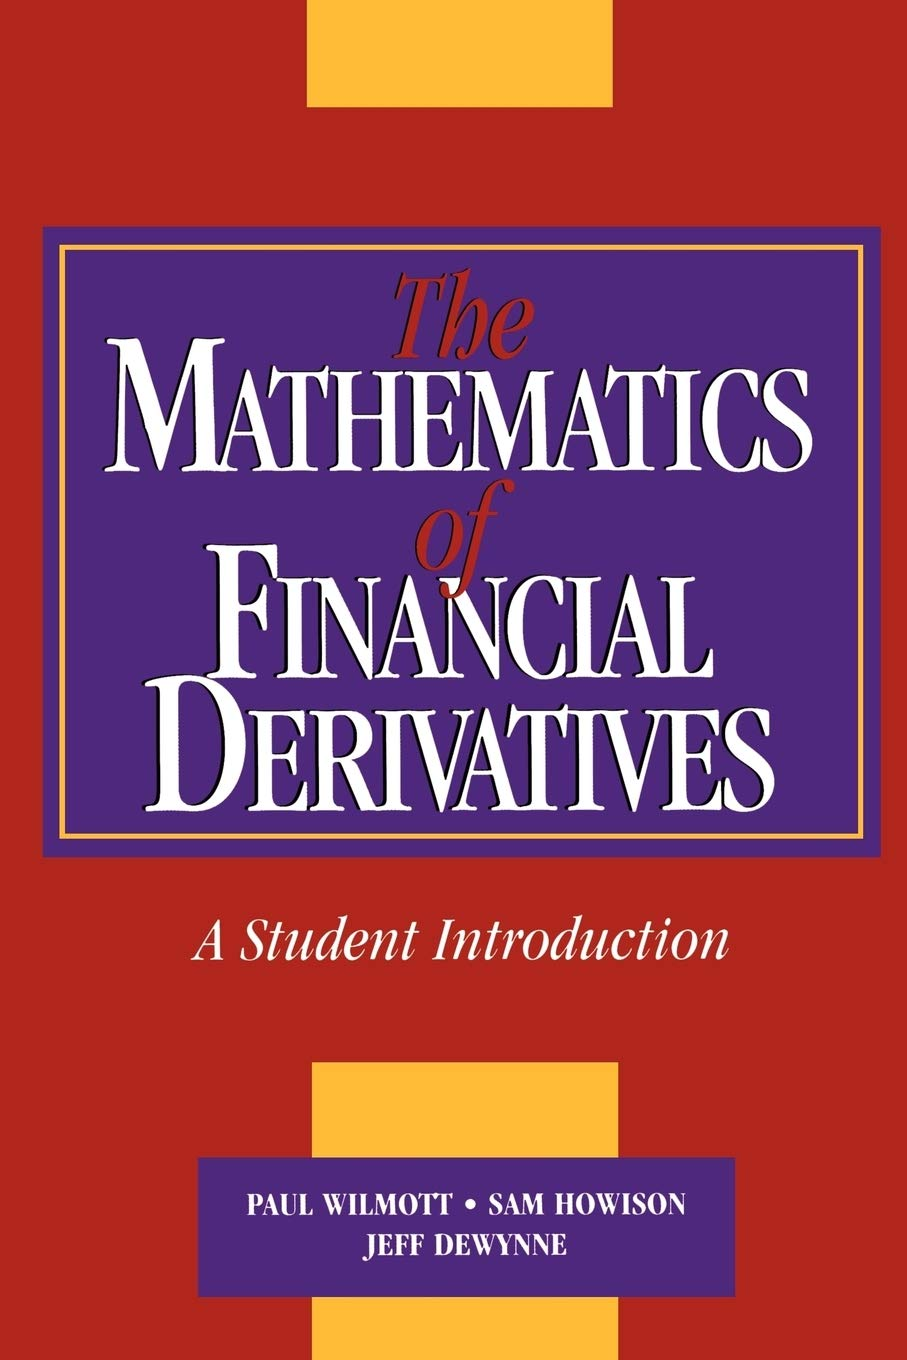 Download The Mathematics Of Financial Derivatives: A Student Introduction 